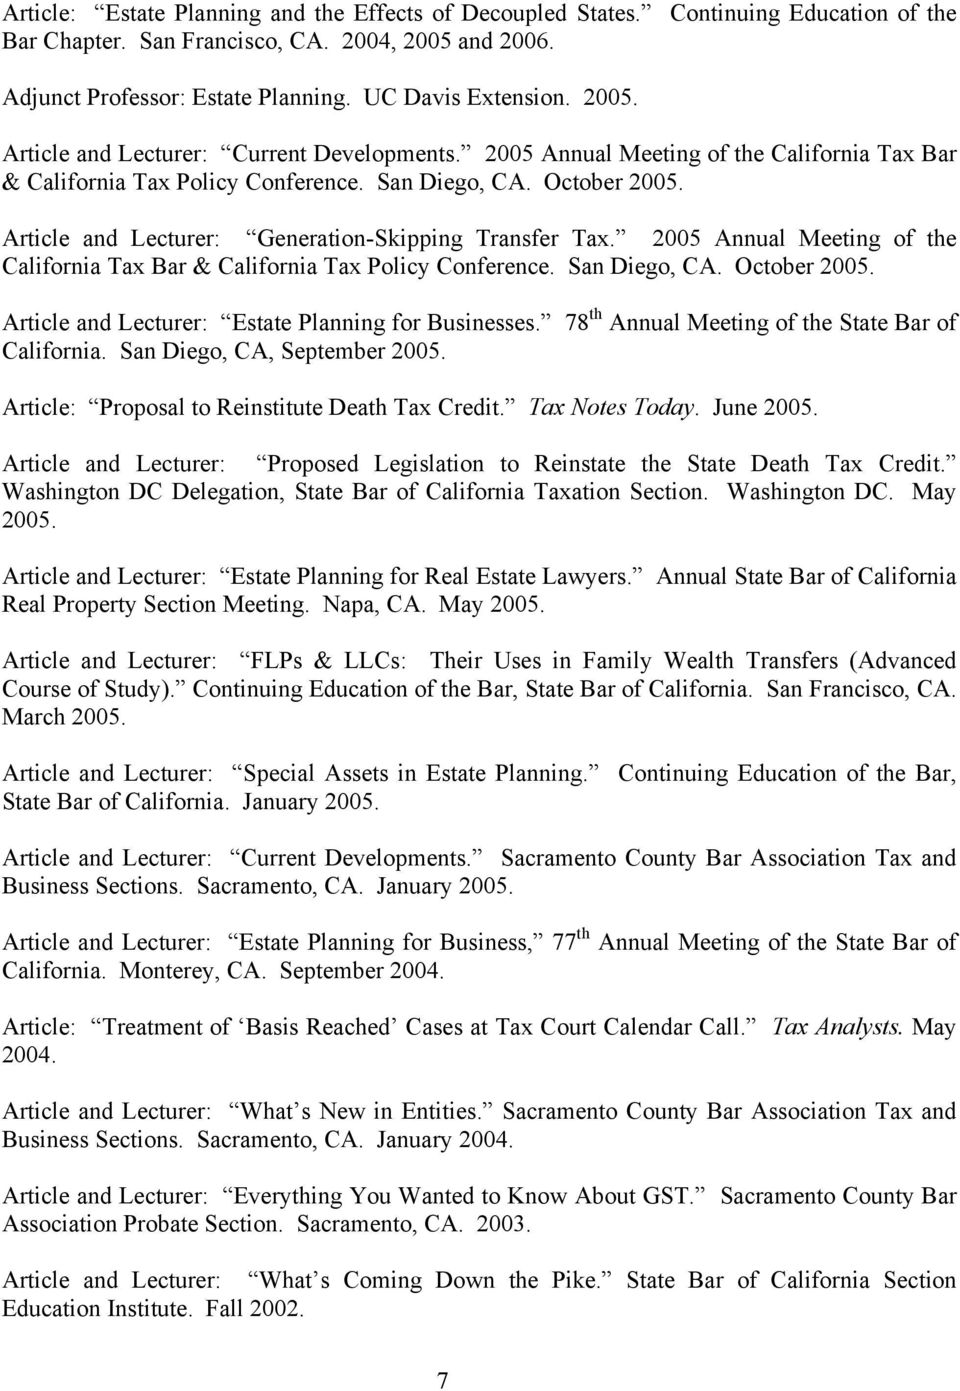 Article and Lecturer: Generation-Skipping Transfer Tax. 2005 Annual Meeting of the California Tax Bar & California Tax Policy Conference. San Diego, CA. October 2005.